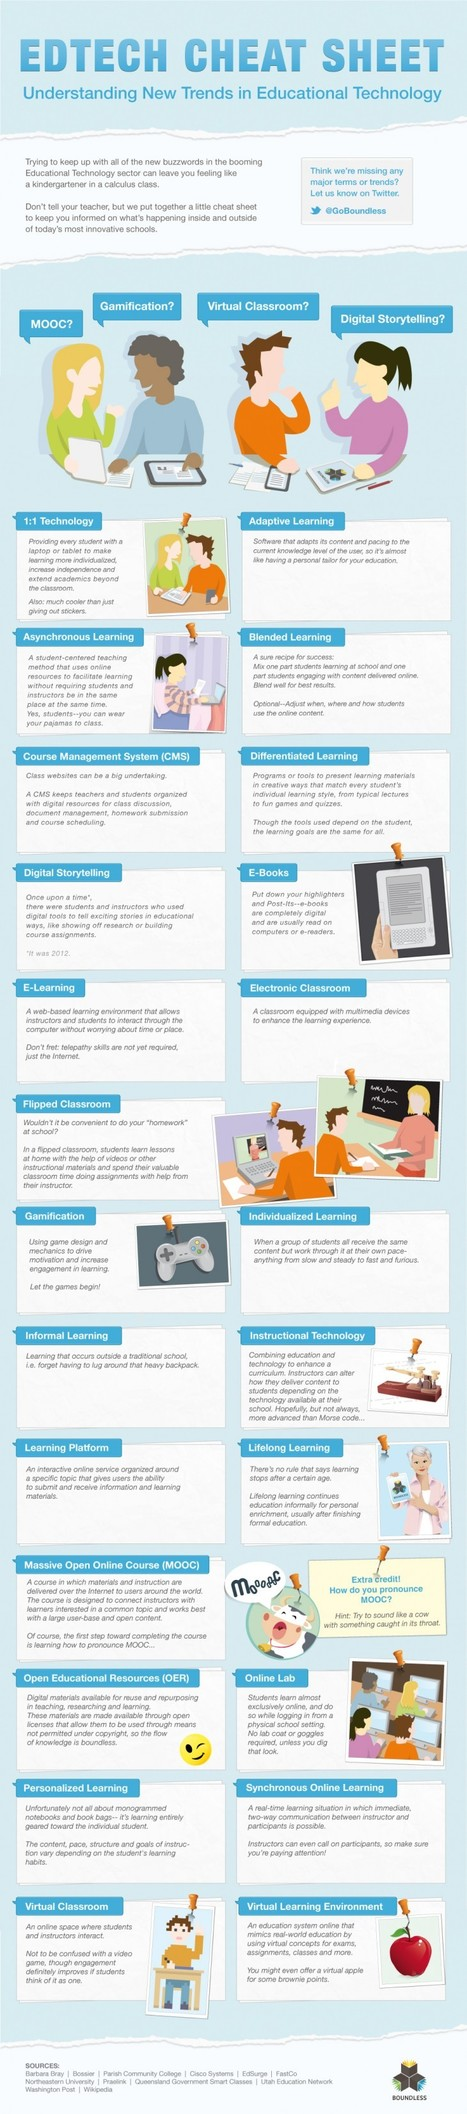 The Must-Have EdTech Cheat Sheet [Infographic] | Leveraging Information | Scoop.it